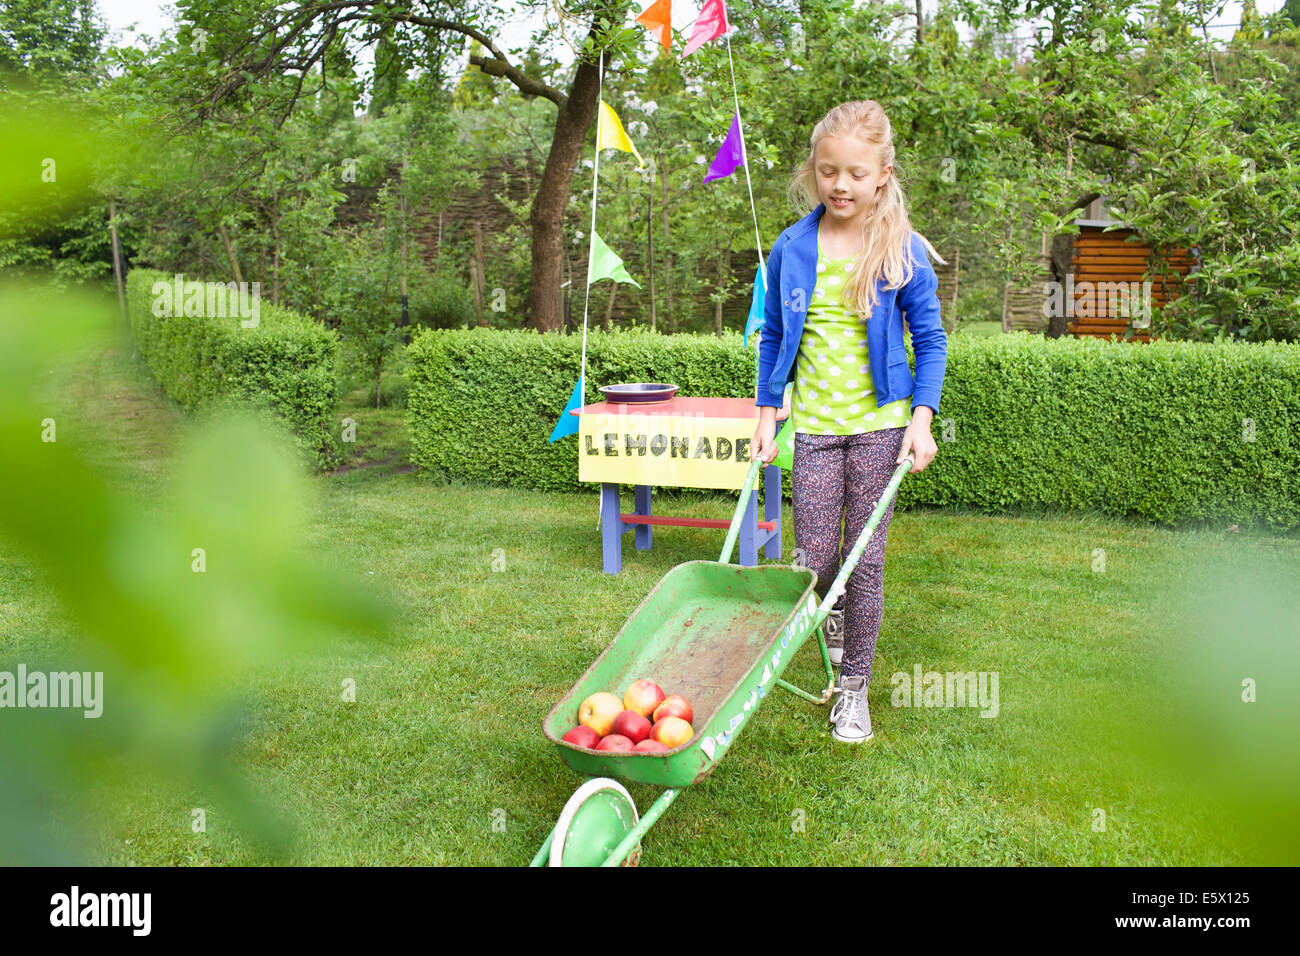 Lemonade stand girl carting apples away from her stand - Stock Image